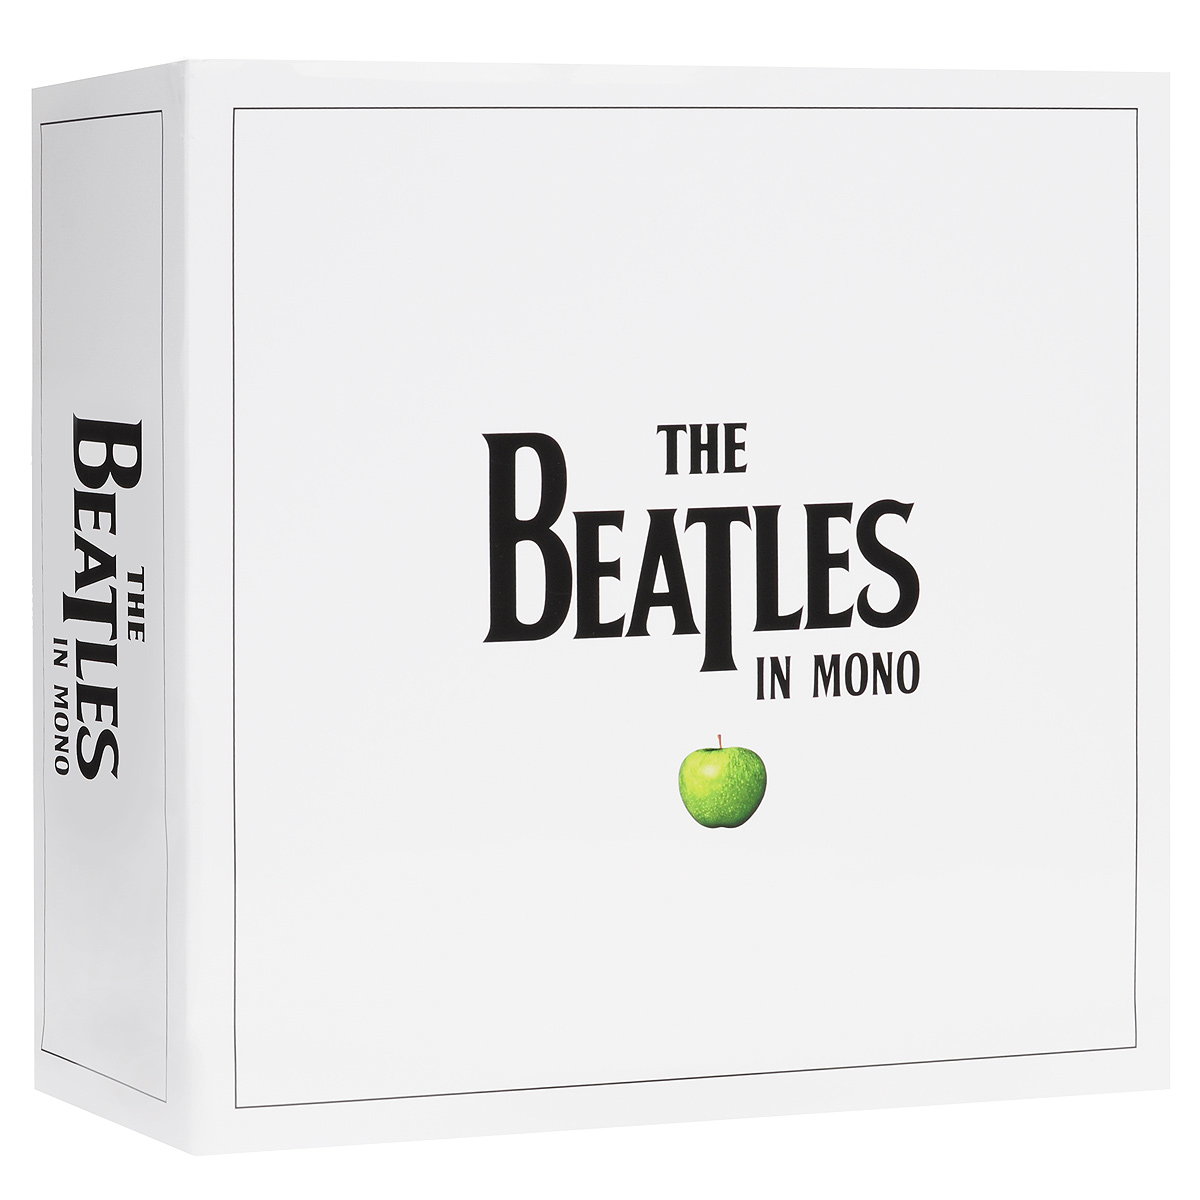 beatles beatles magical mystery tour mono The Beatles The Beatles. The Beatles In Mono (14 LP)